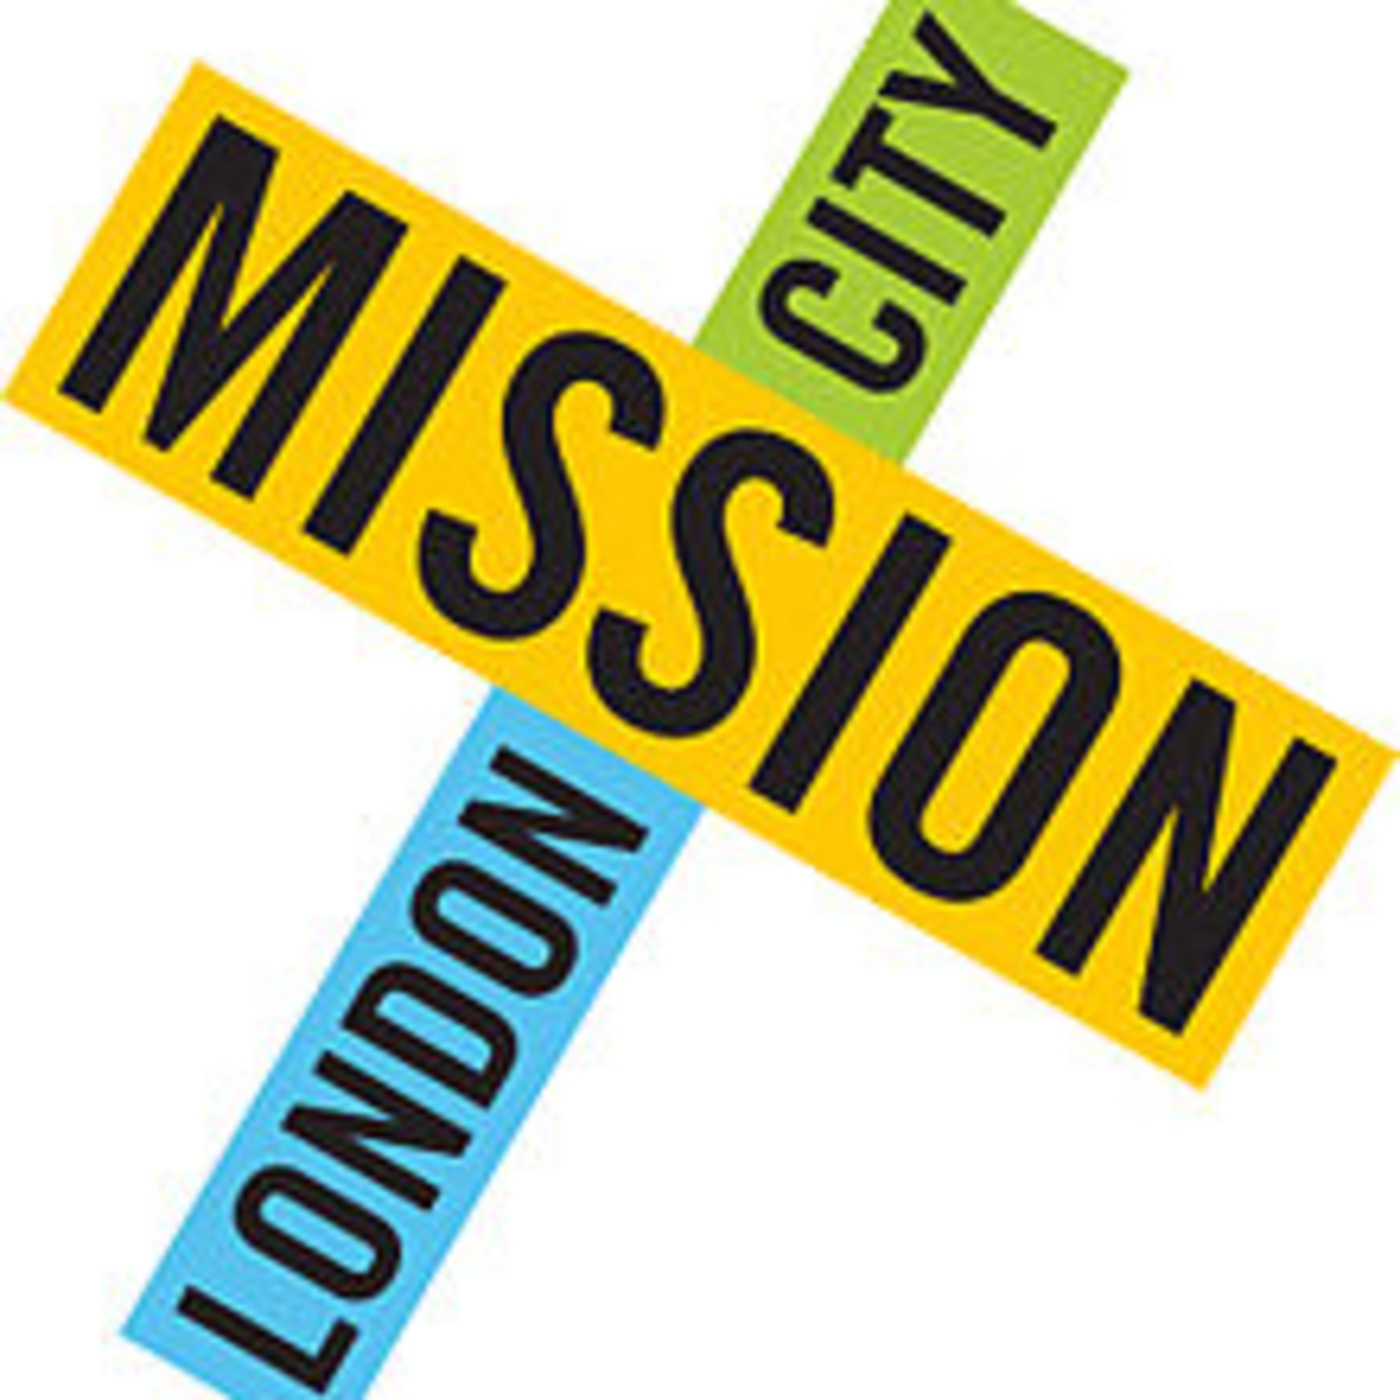 God's Picture for mission in our cities - Michael Reeves